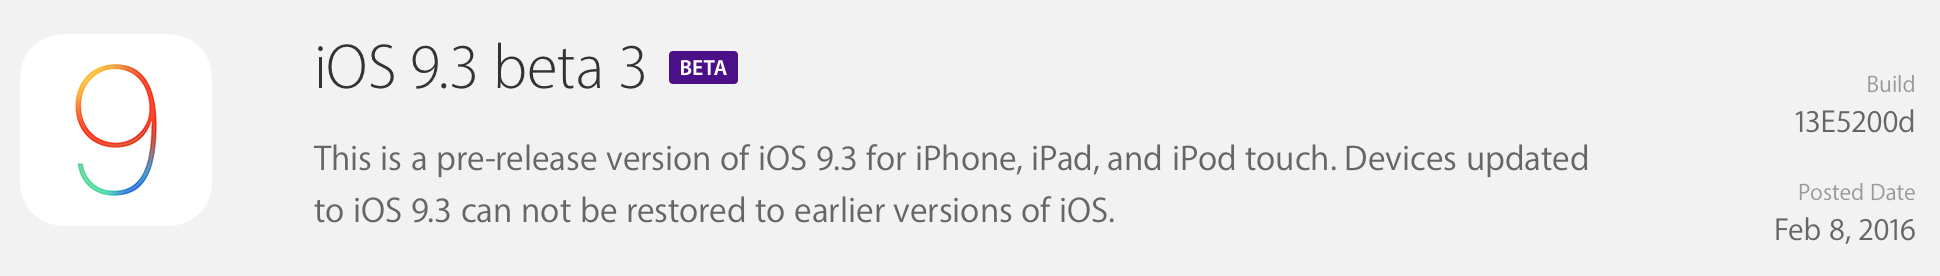 iOS 9 Beta Release Notes-bildschirmfoto-2016-02-08-um-19.13.11.png